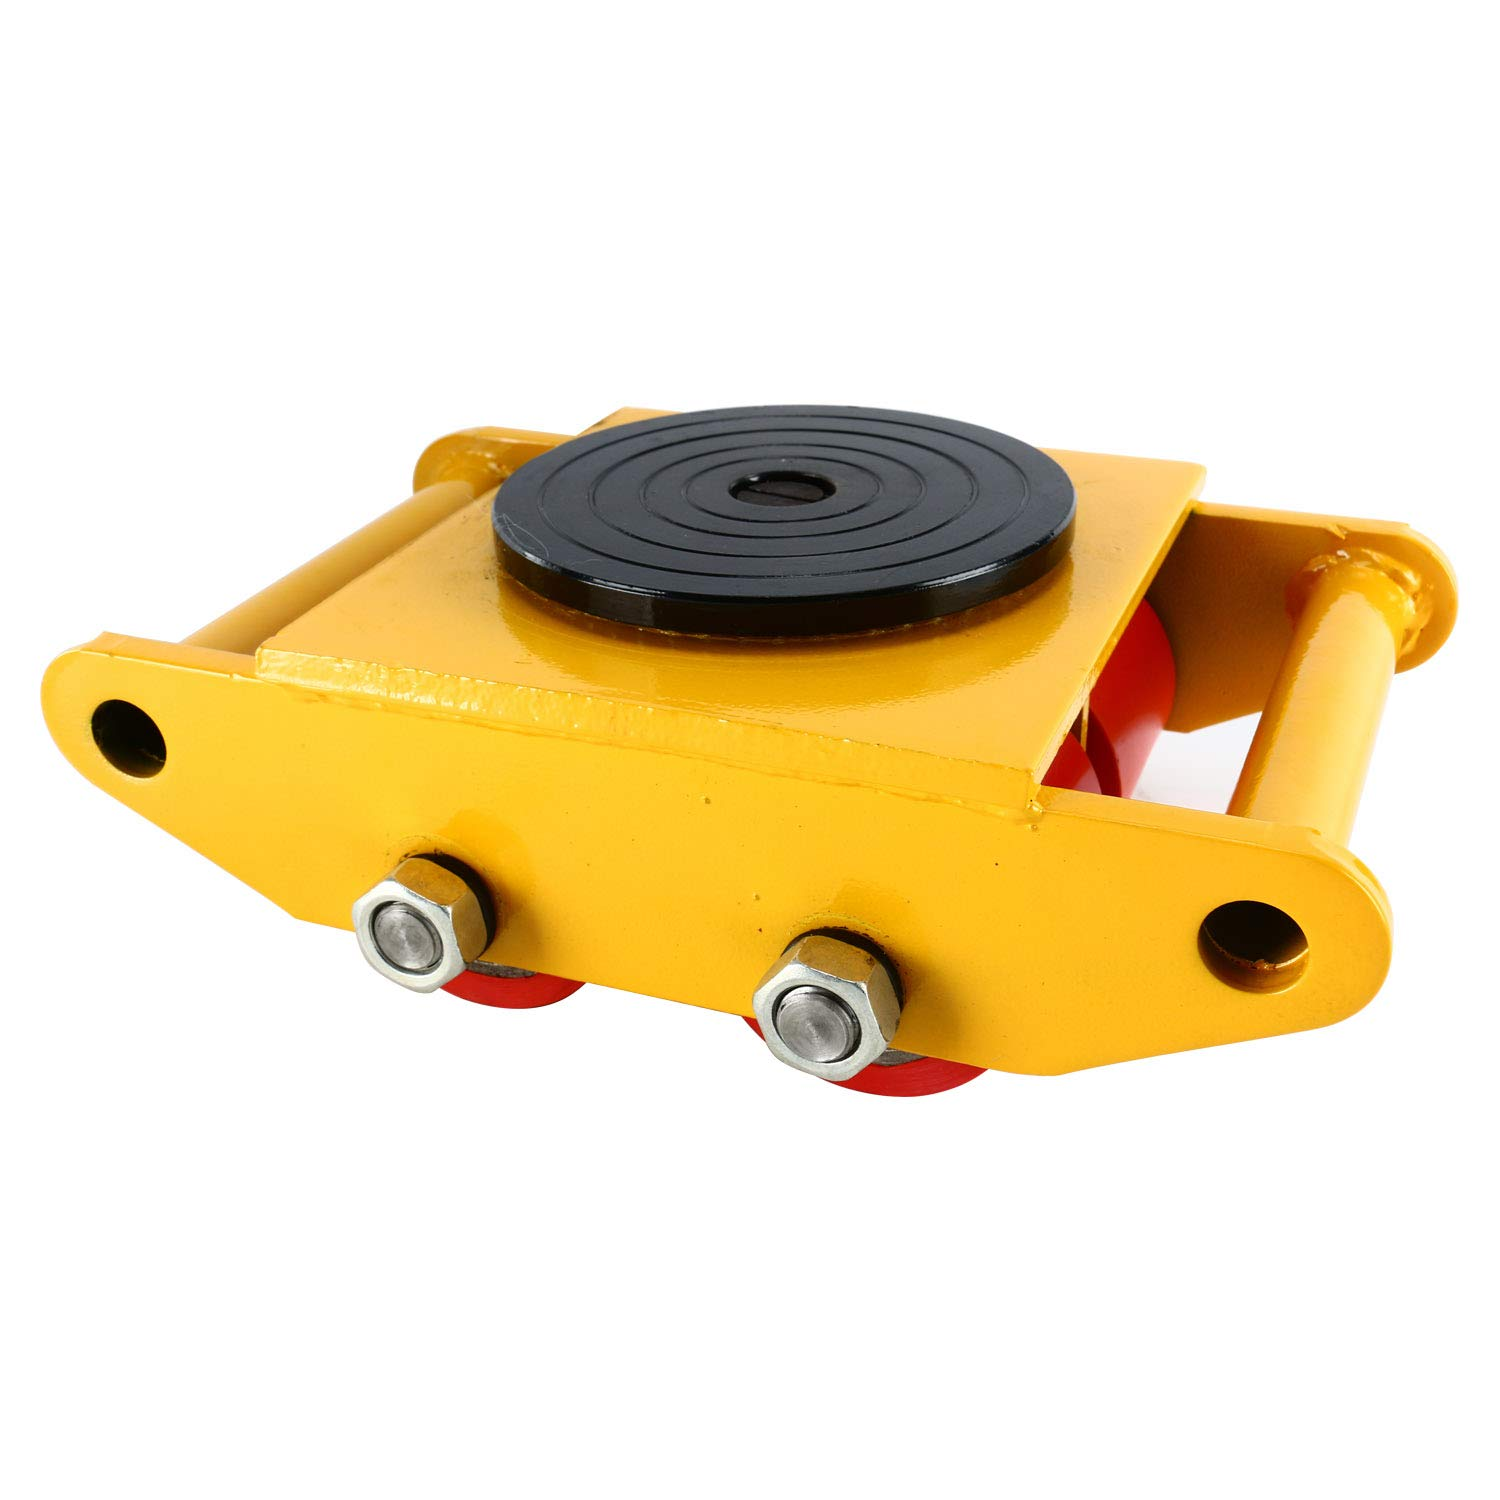 YaeTek Industrial Machinery Mover 13200 lbs 6 Tons Machinery Skate Dolly with 4 Rollers Cap 360 Degree Rotation (Yellow)